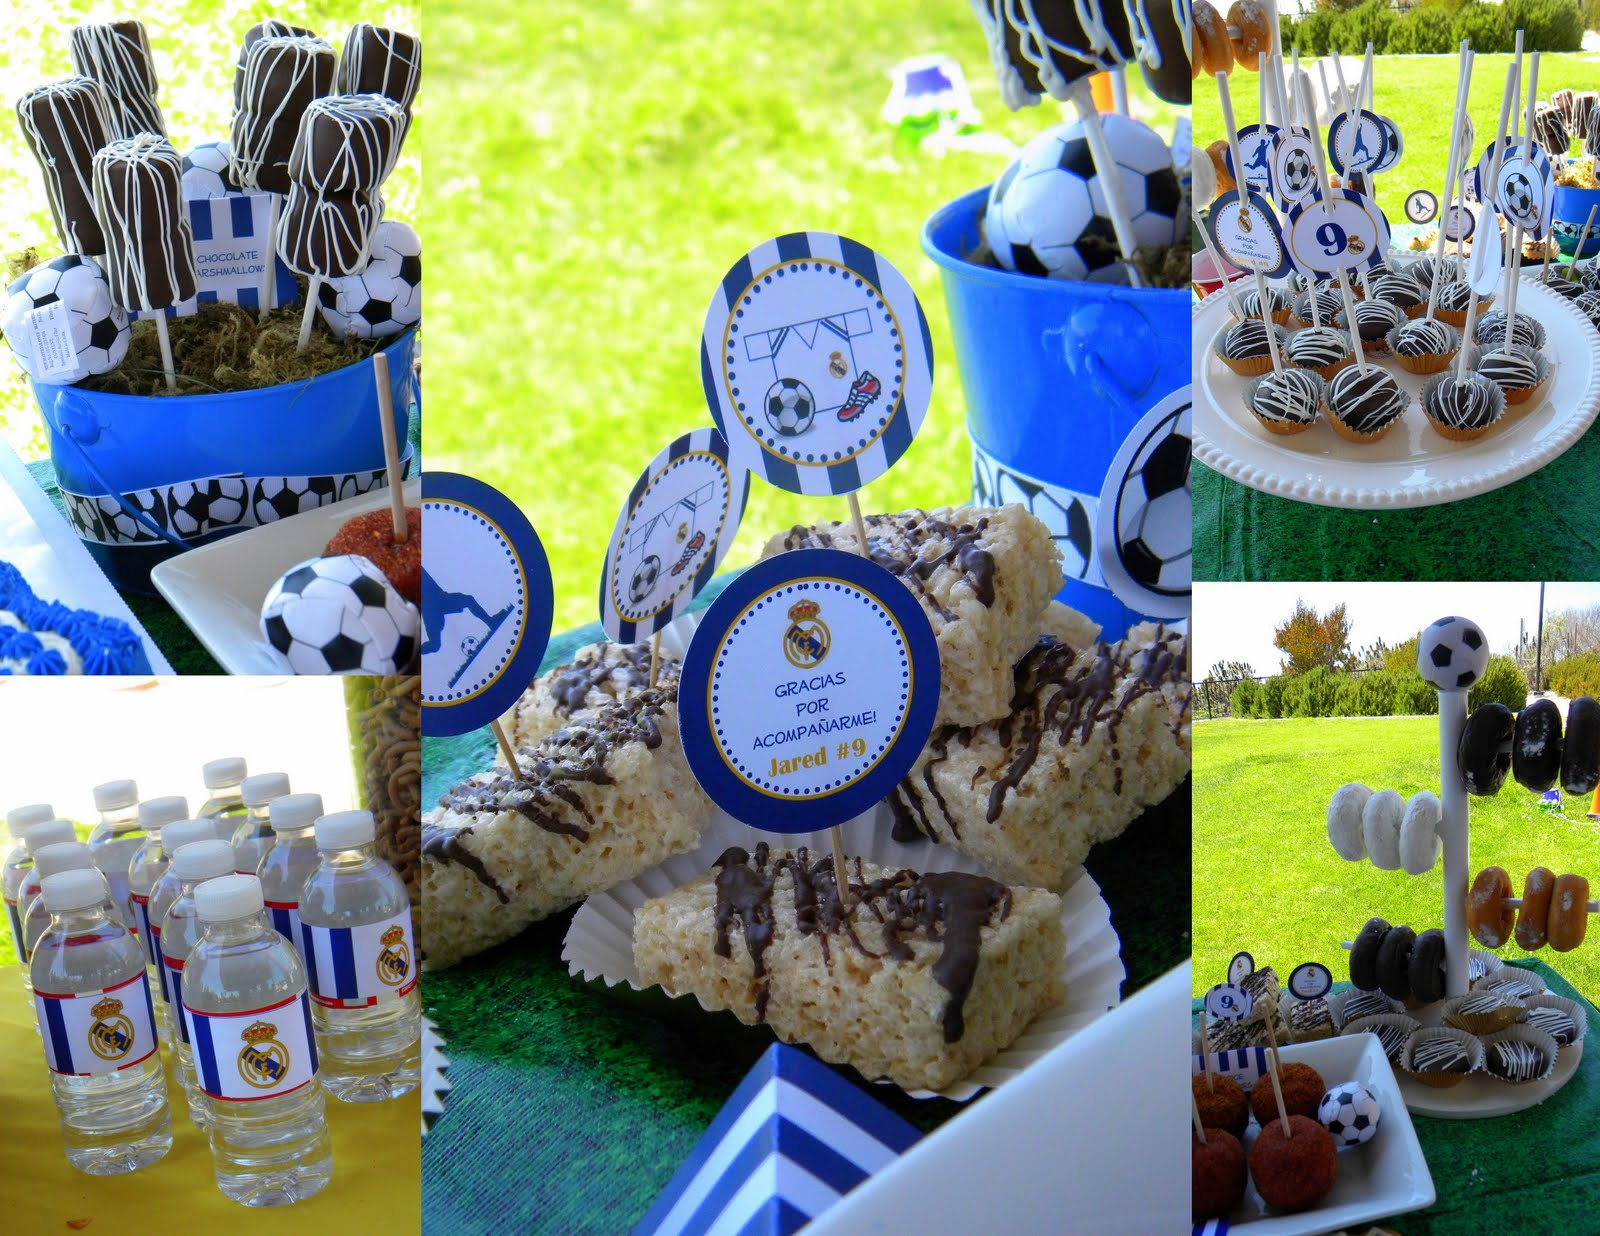 Mkr creations real madrid soccer party theme - Real madrid decorations ...